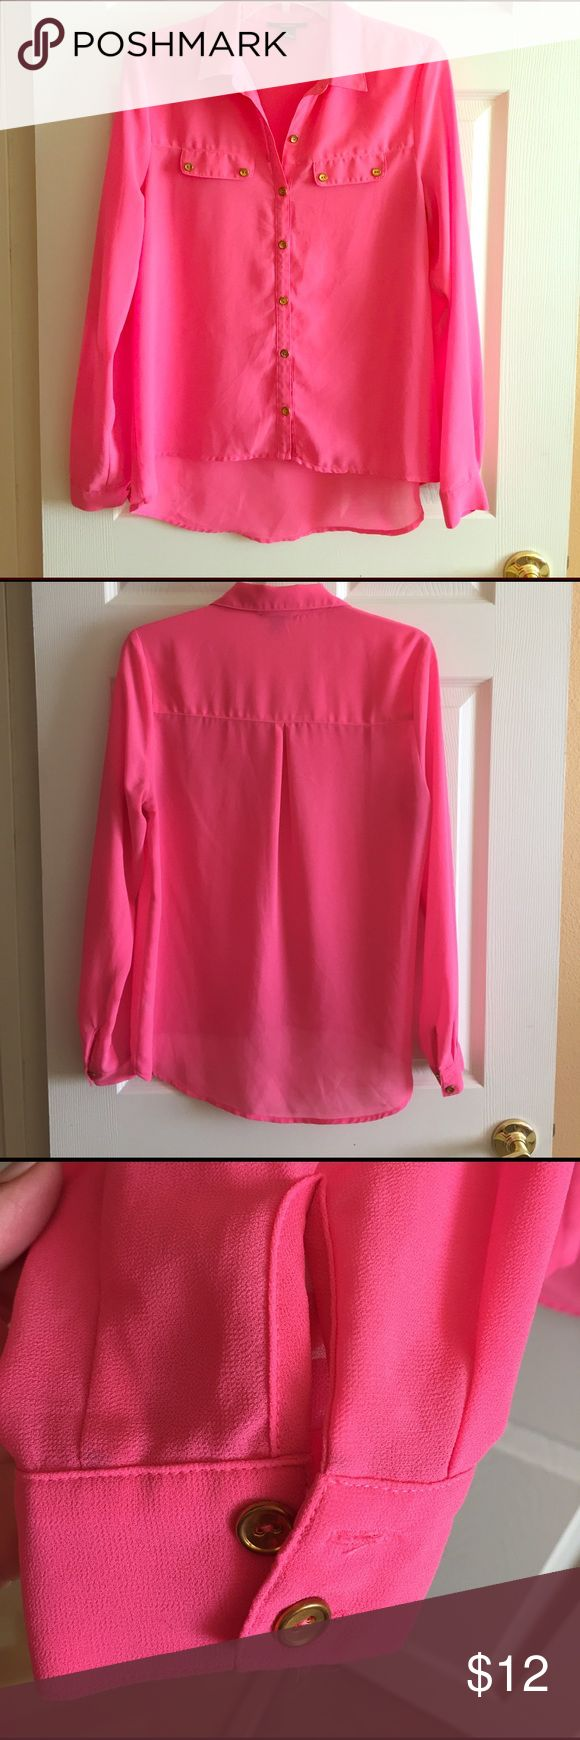 Hot pink button-down top! Very cute with white jeans or all black! Forever 21 Tops Button Down Shirts